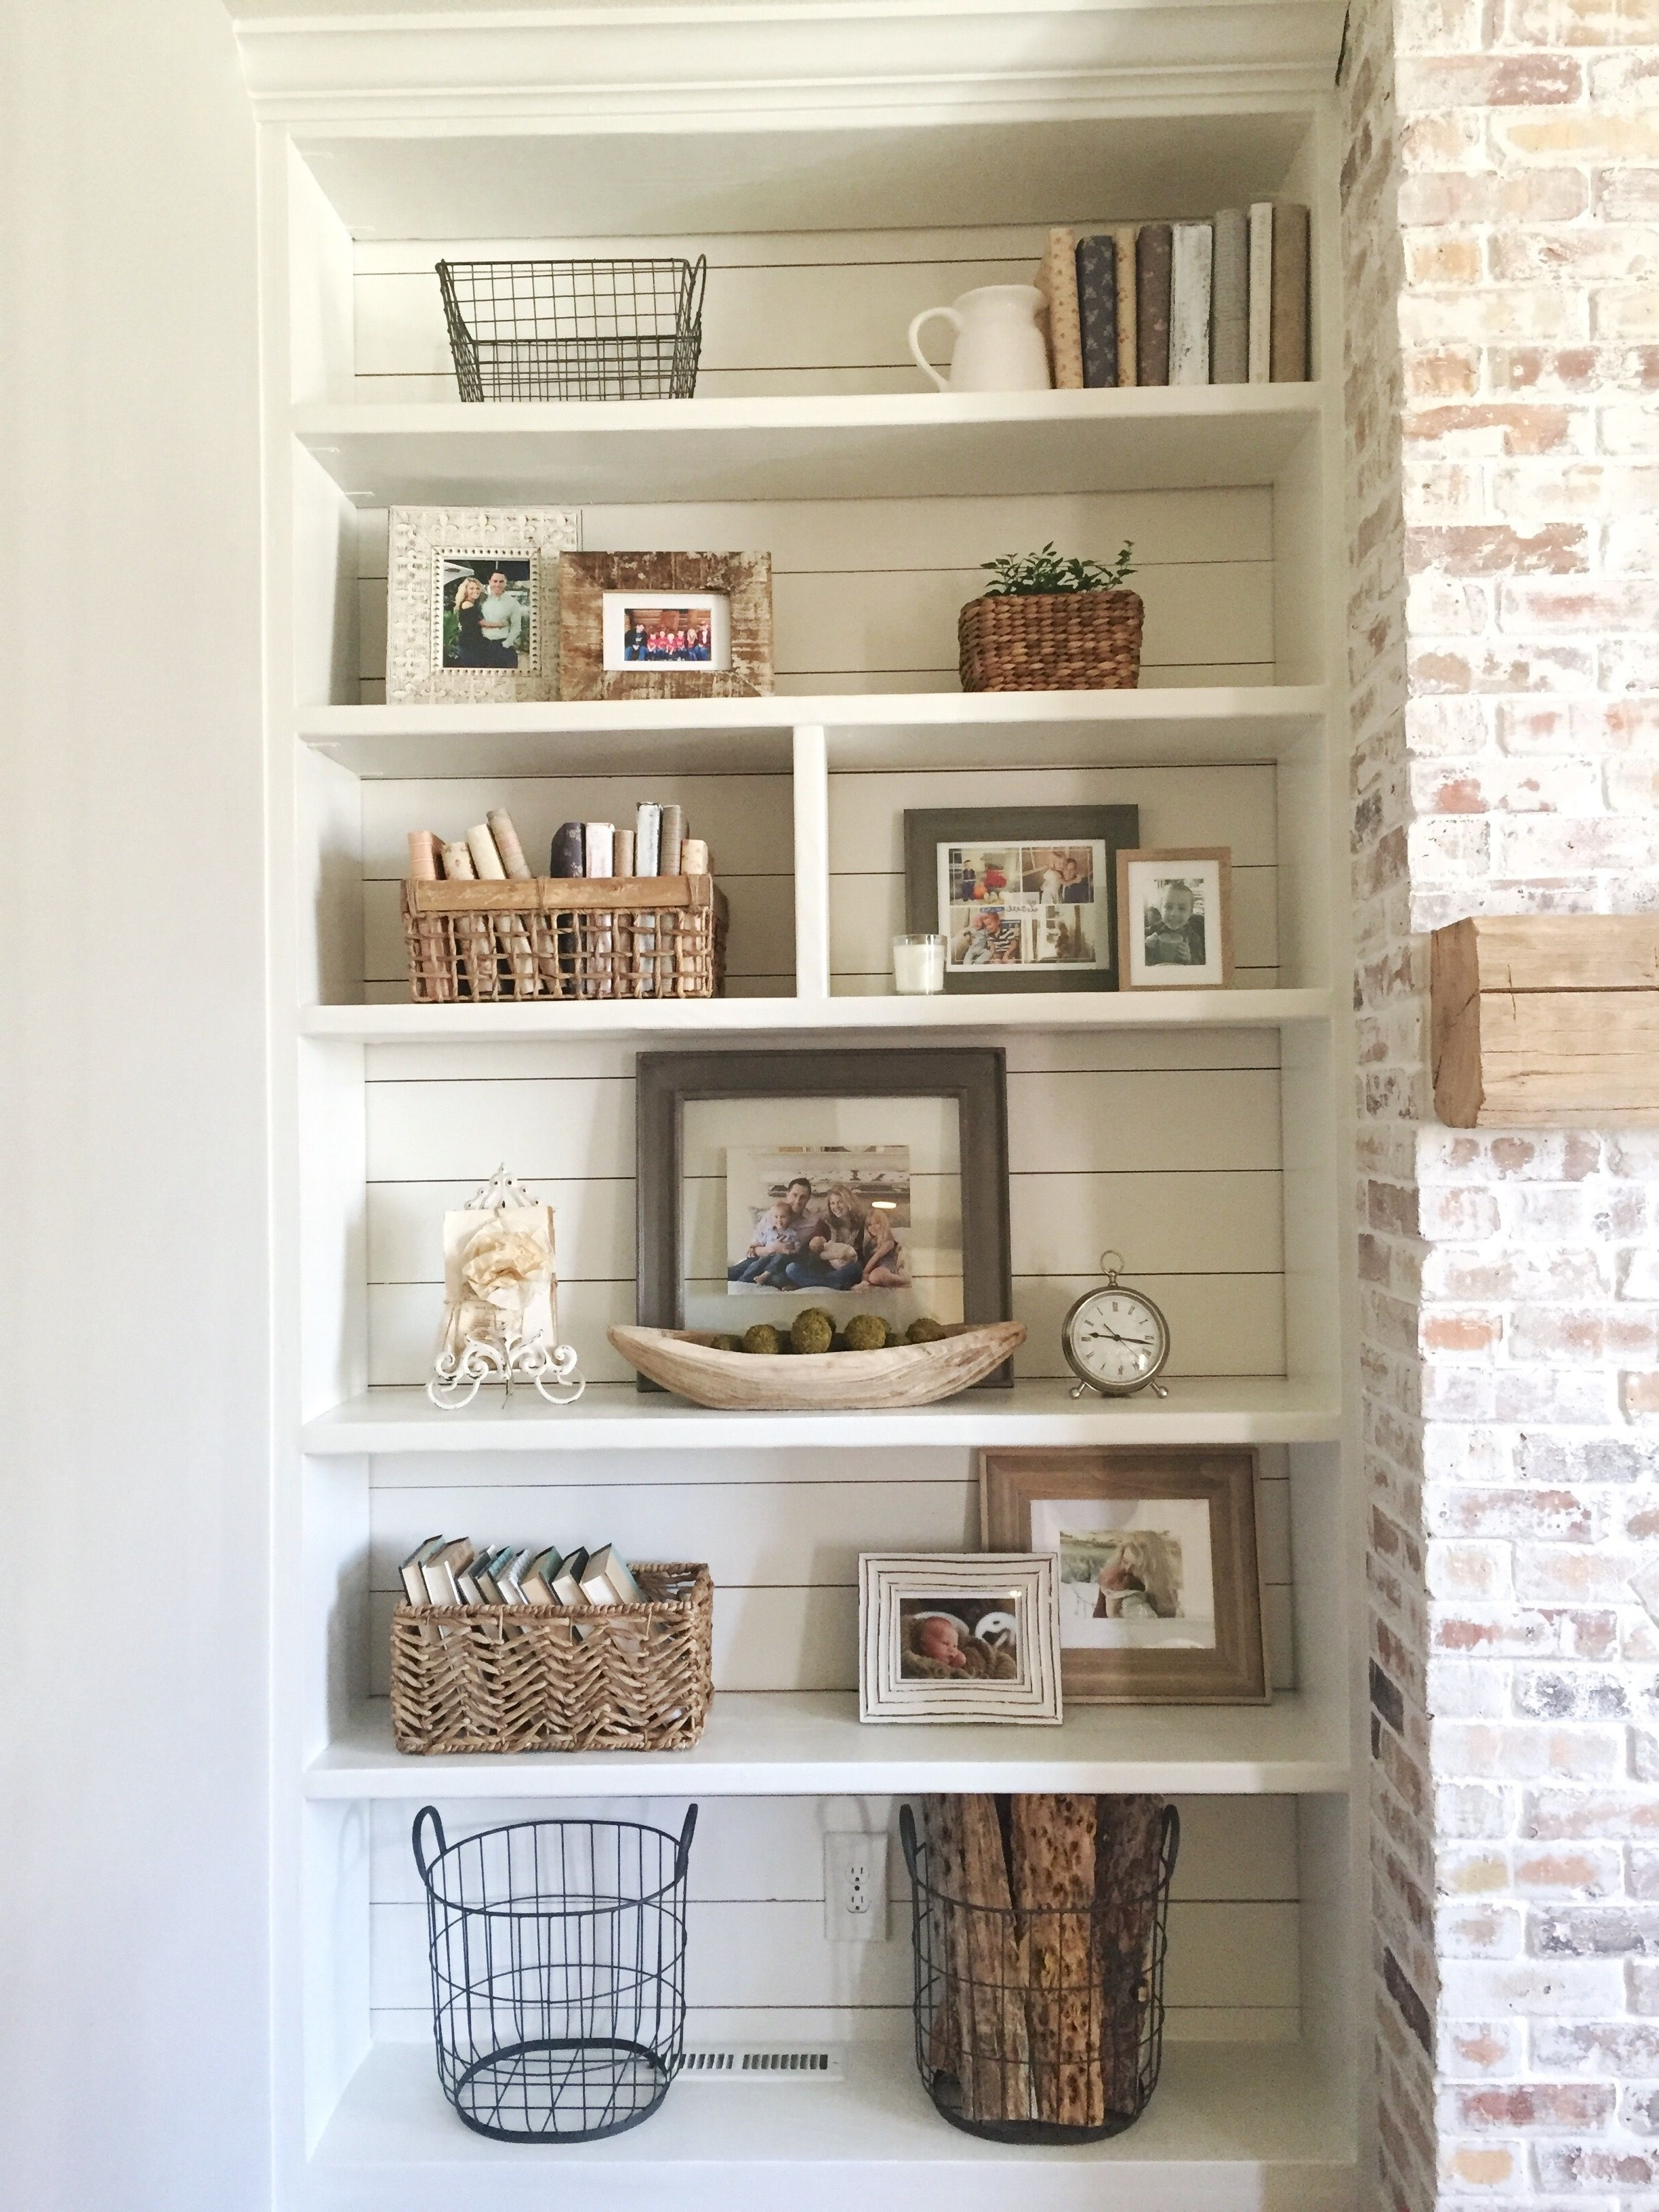 Whitewash Bookcases Regarding Current Built In Bookshelves Styling And Decor, Shiplap, Whitewash Brick (View 13 of 15)